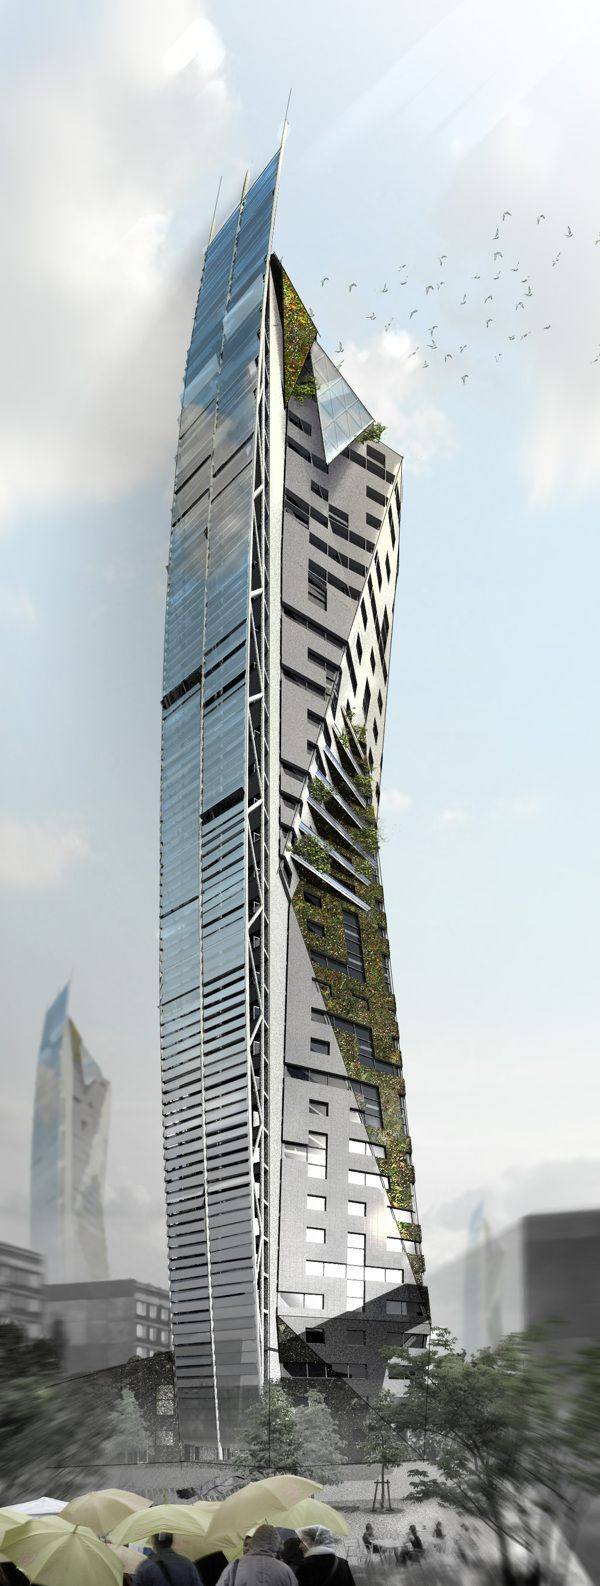 Eco tower kiev ukraine by pavlo kryvozub concept design architecture ☮